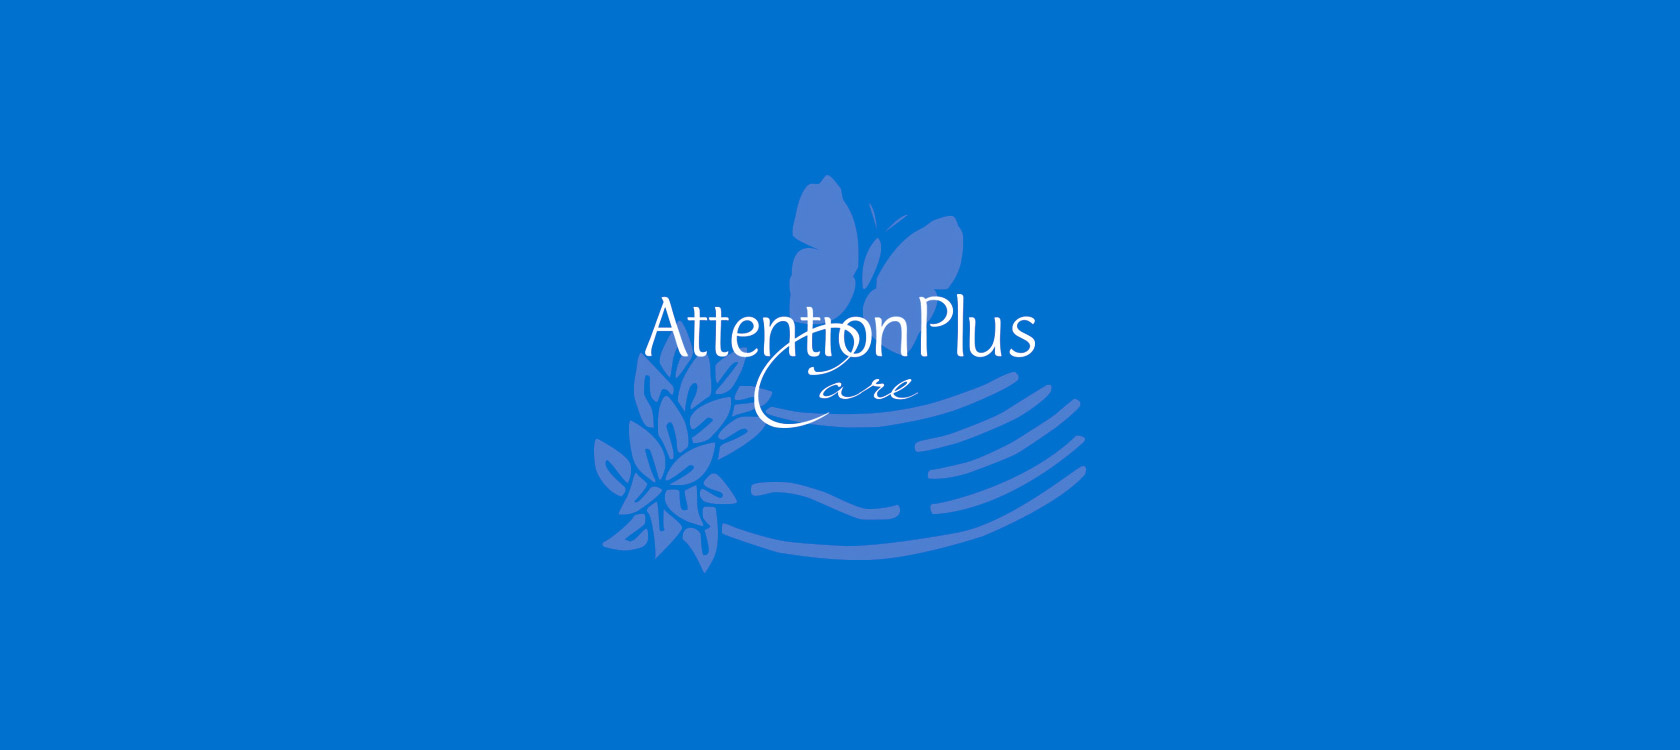 Attention Plus Care